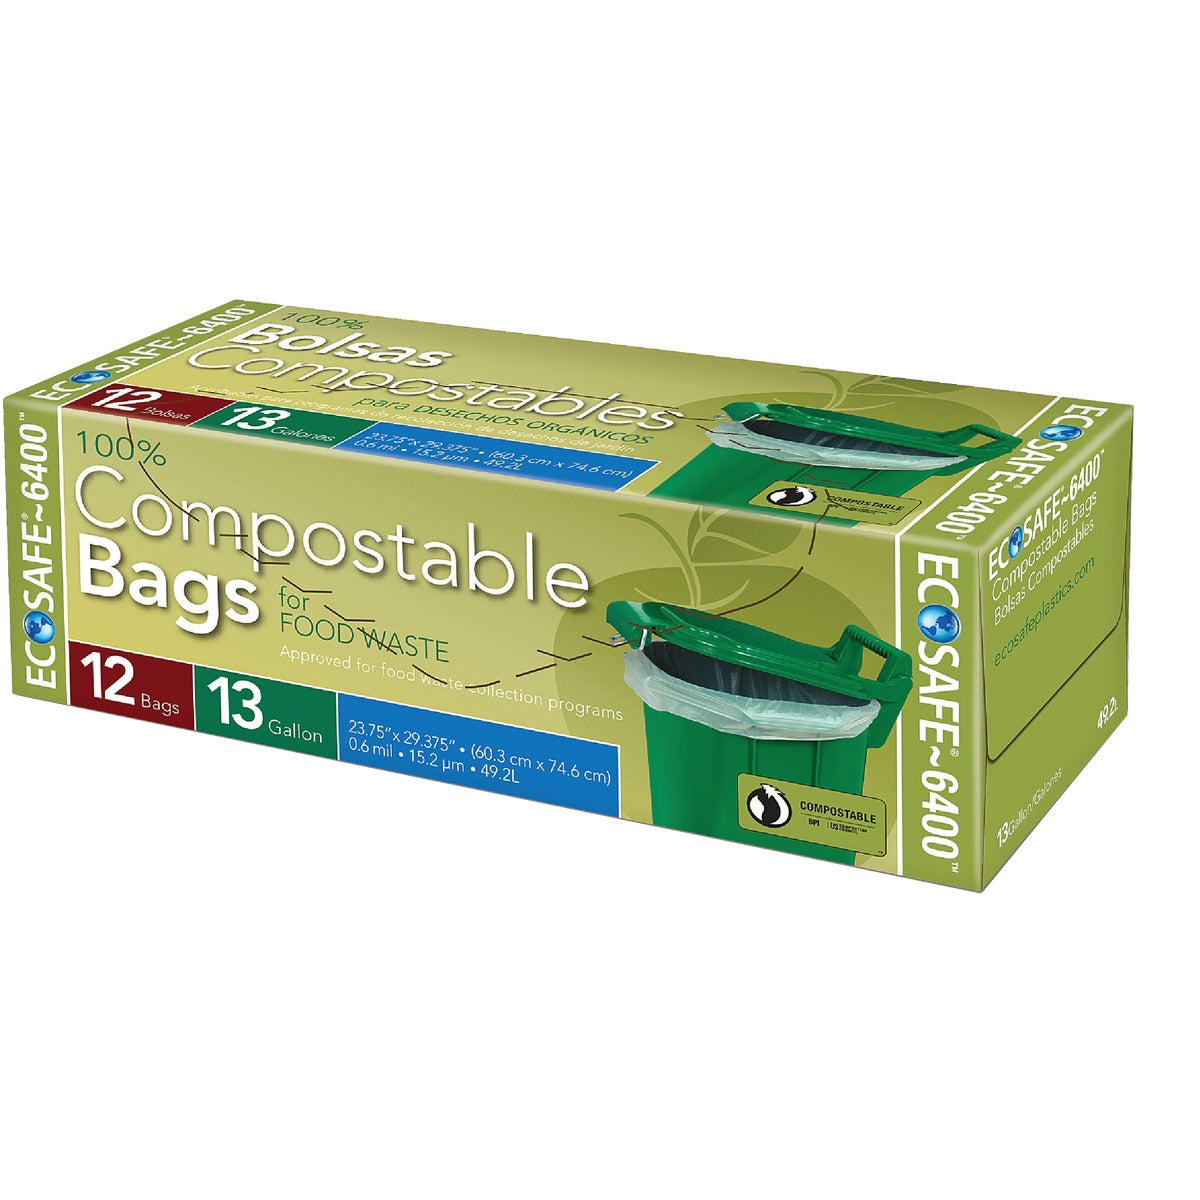 12CT 13GAL TRASH BAGS - GKL032194 by Presto Products